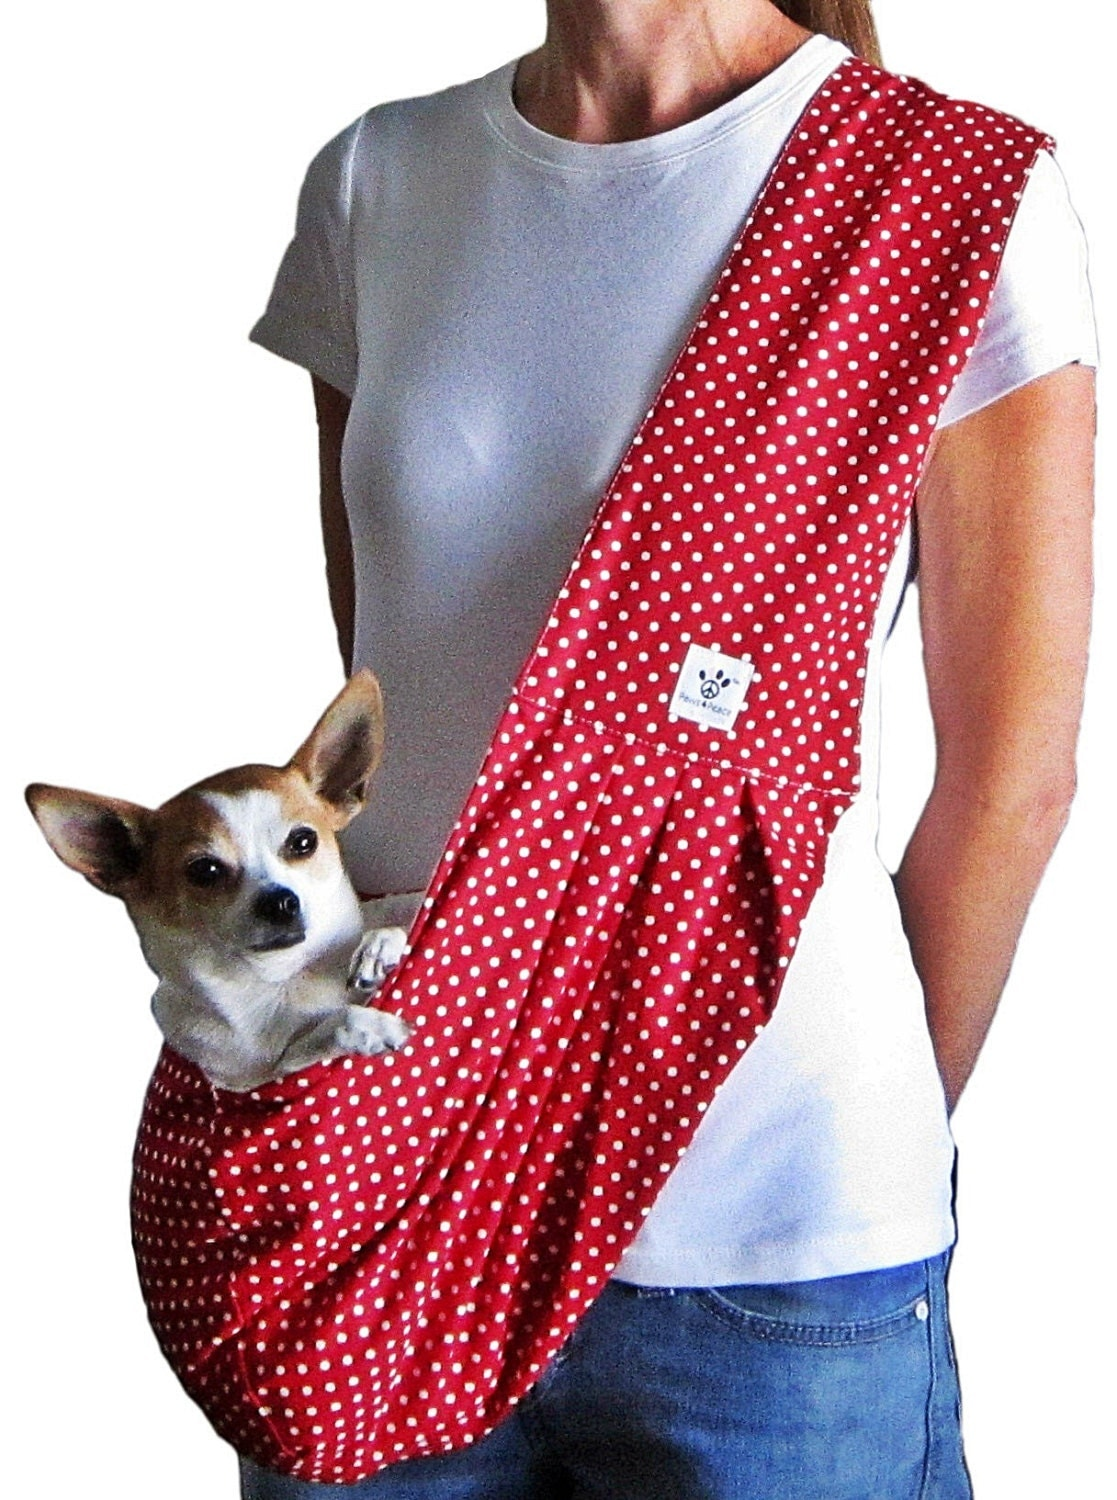 Dog sling red with white polka dots by paws4peacellc on etsy - Pattern for dog carrier sling ...